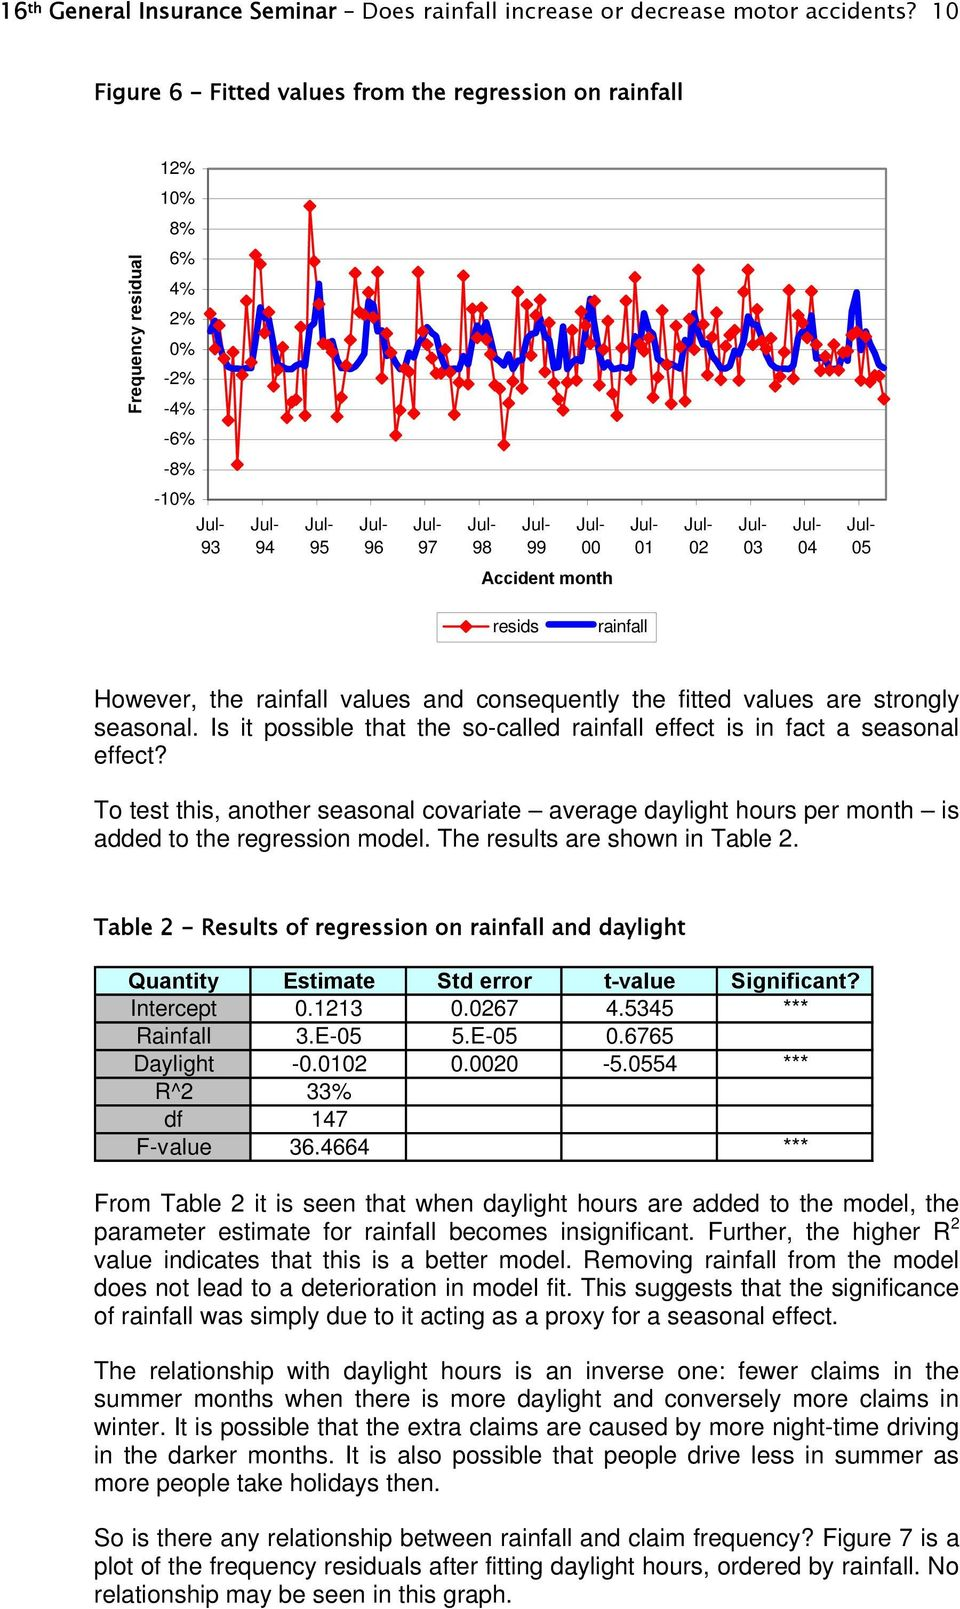 However, the rainfall values and consequently the fitted values are strongly seasonal. Is it possible that the so-called rainfall effect is in fact a seasonal effect?